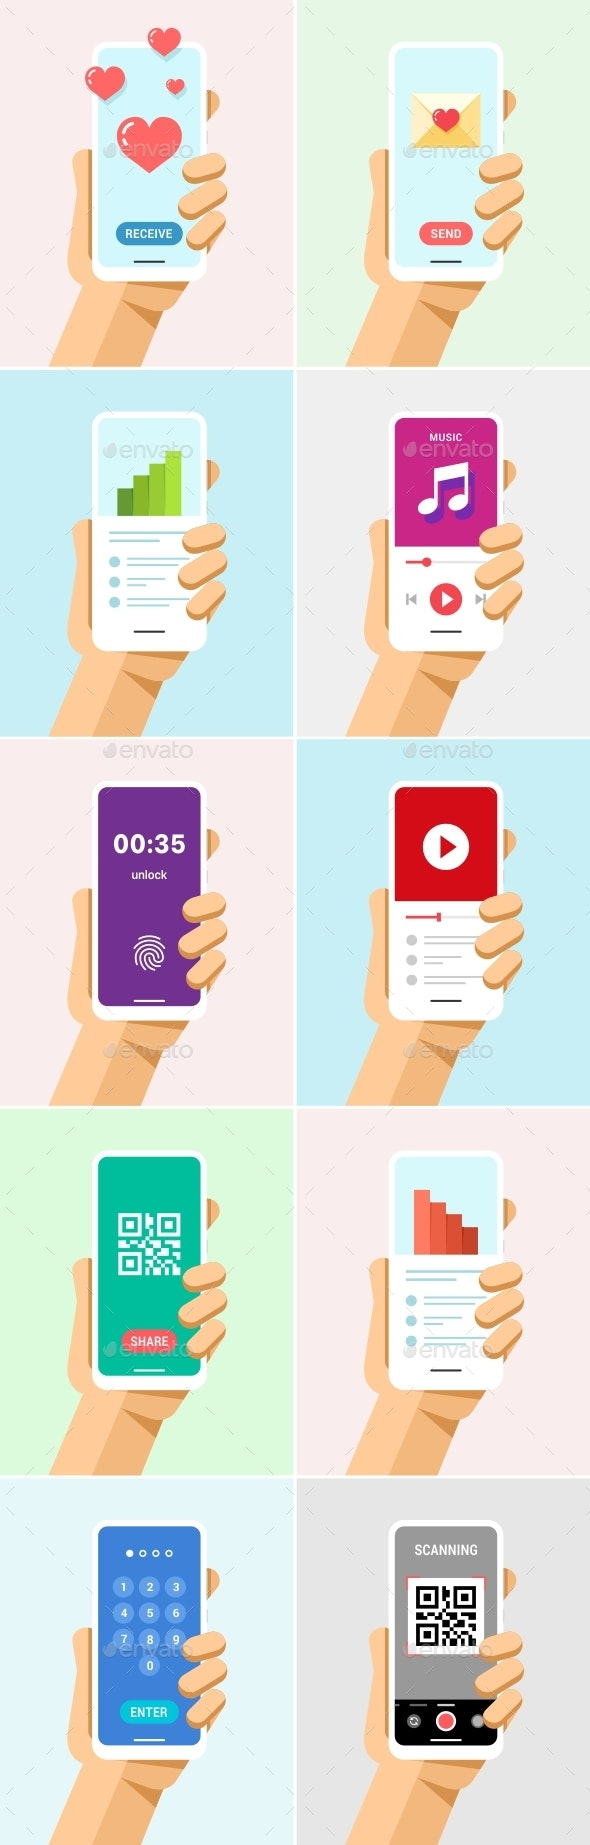 Phone in Hand Mock-Up Flat Vector Set 5 - Communications Technology